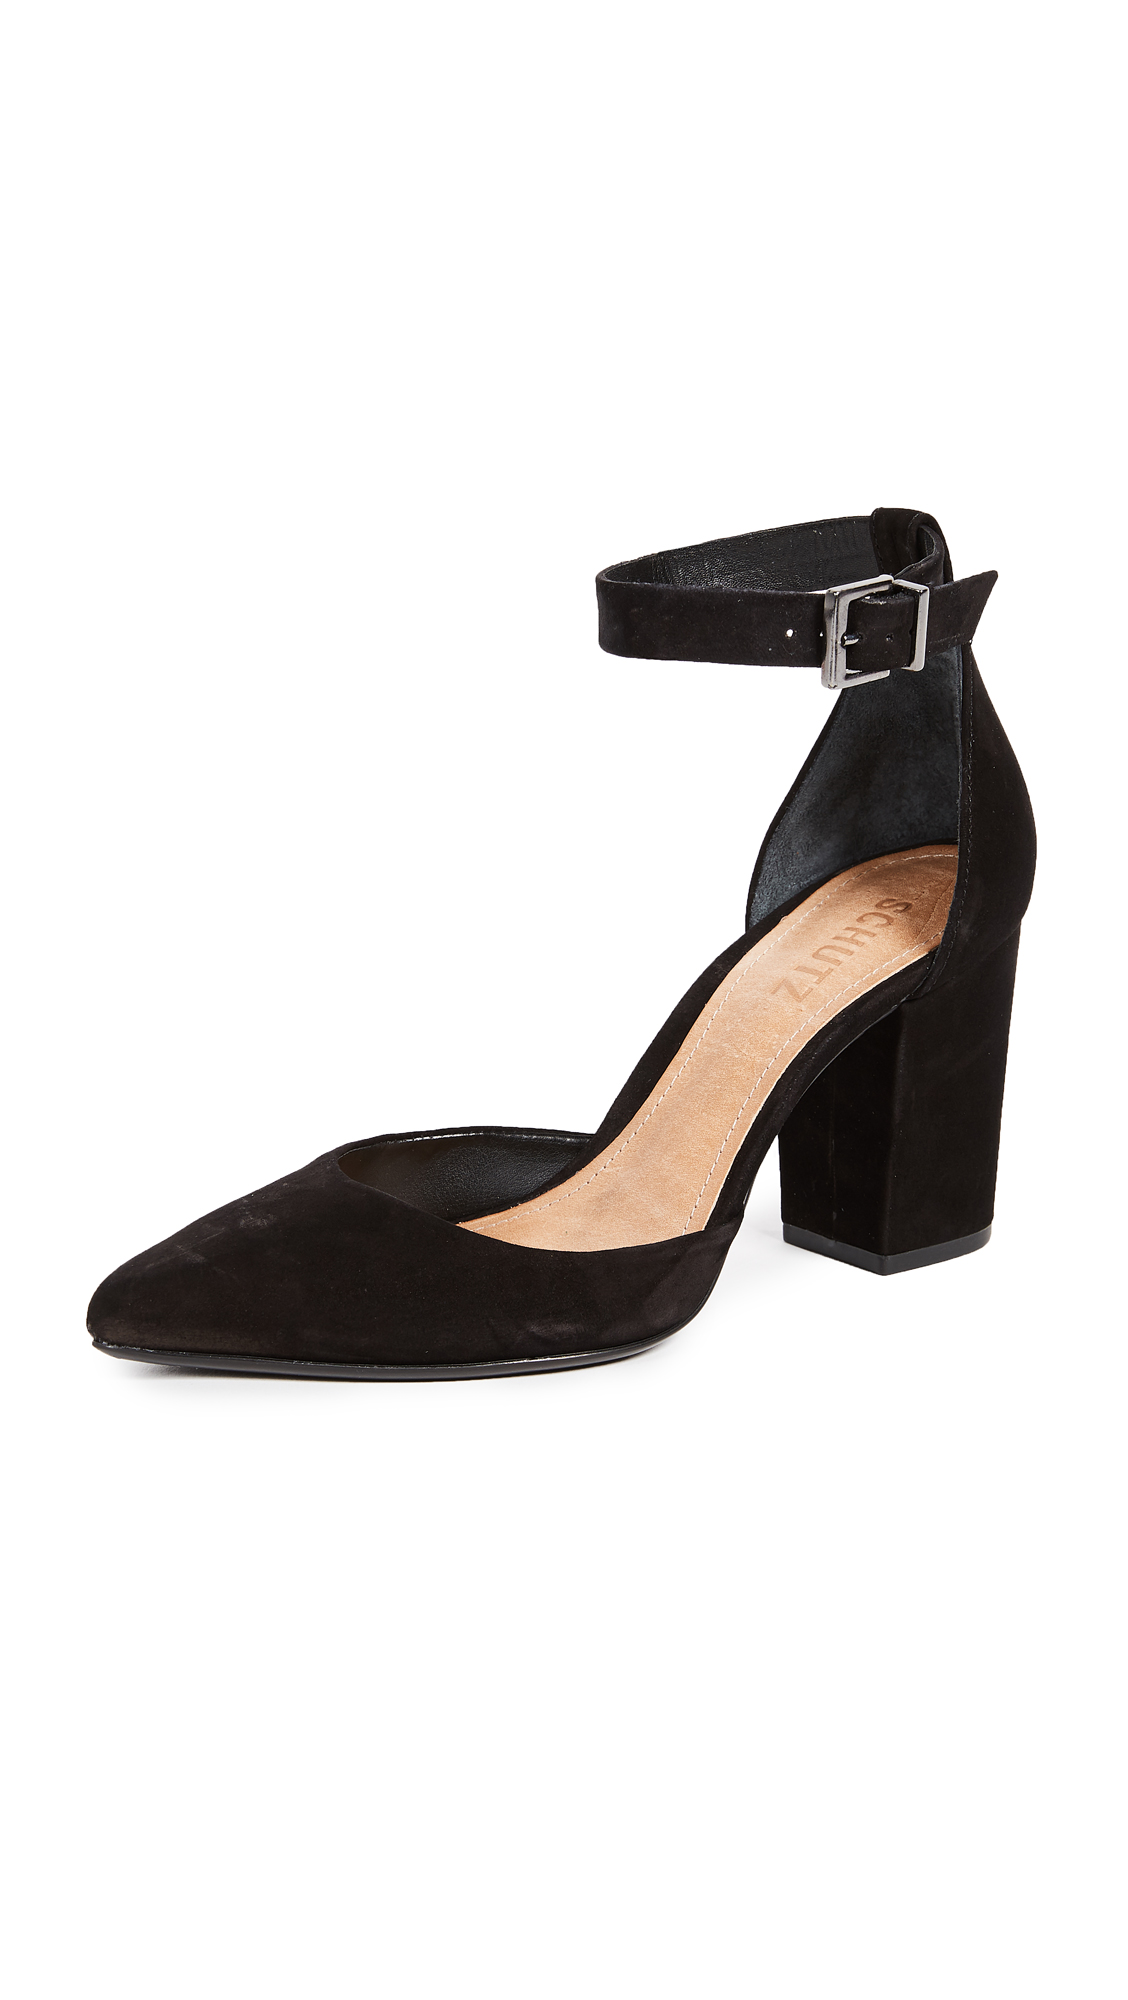 Schutz Ionara Ankle Strap Pumps - Black